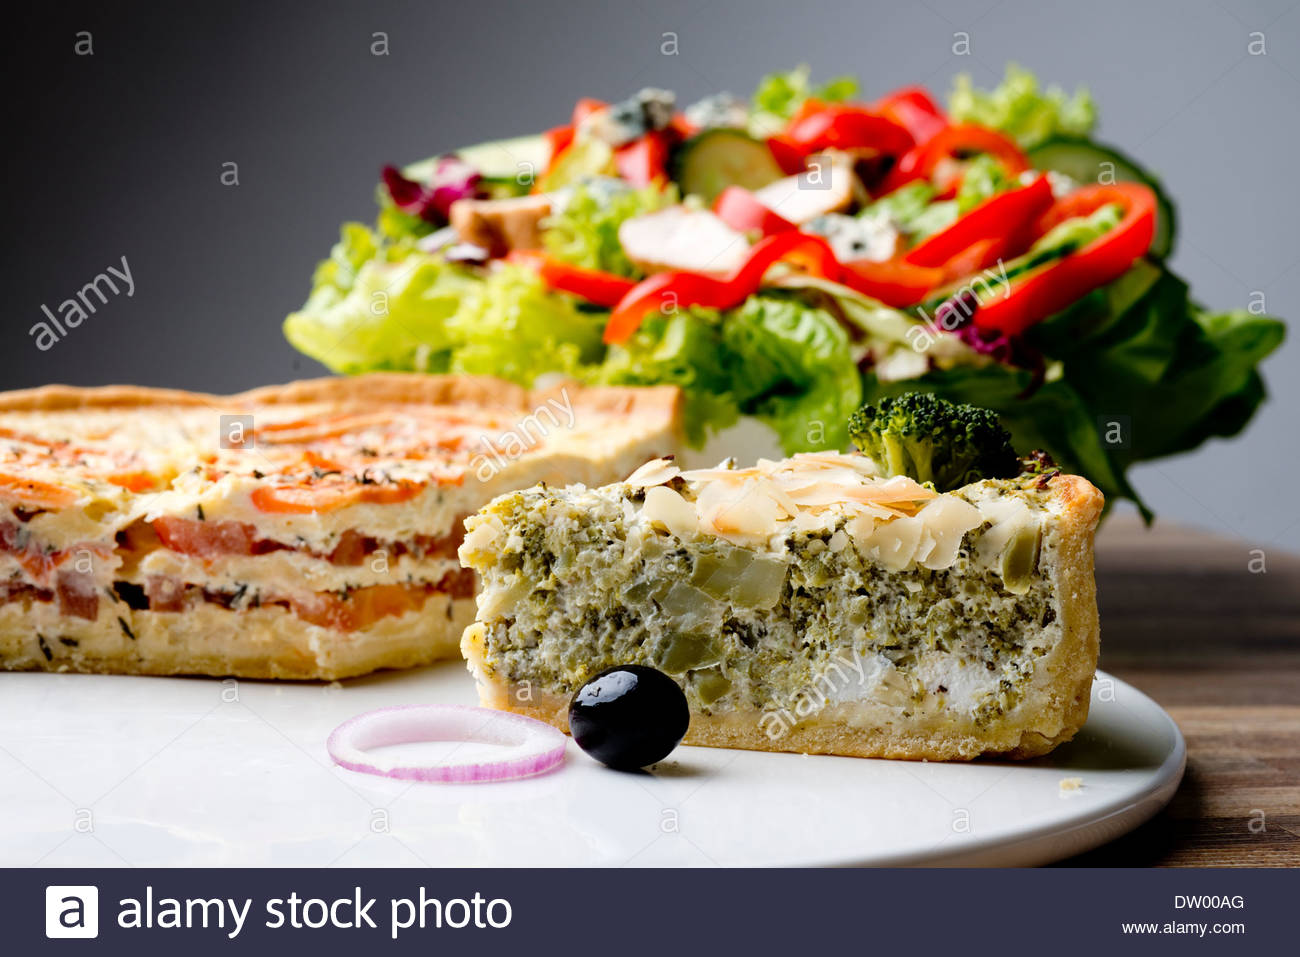 Broccoli And Tomato Tarts Served On White Plate With A Fresh Chicken